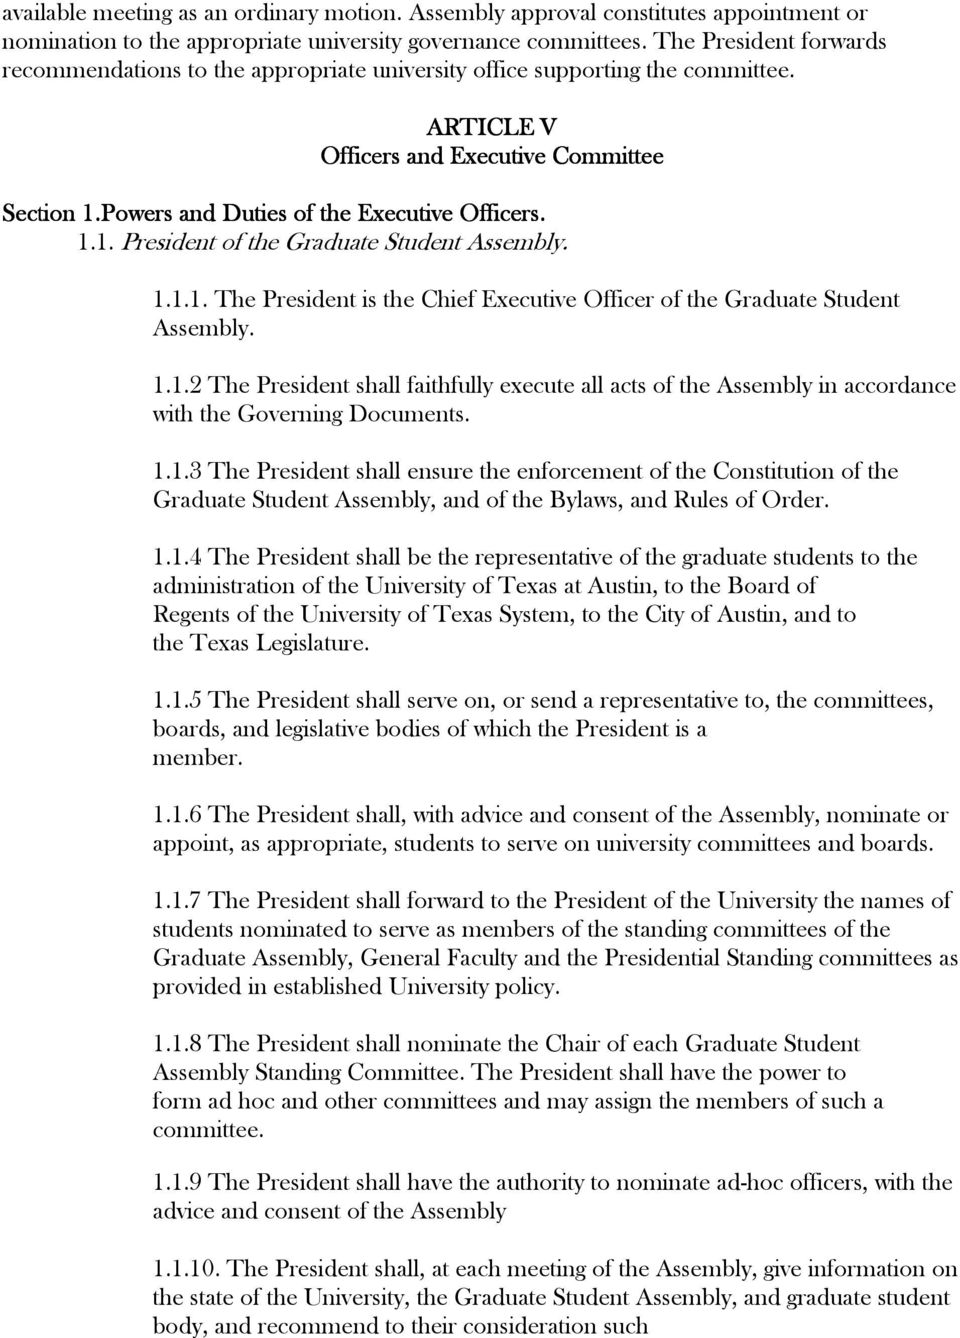 1.1. President of the Graduate Student Assembly. 1.1.1. The President is the Chief Executive Officer of the Graduate Student Assembly. 1.1.2 The President shall faithfully execute all acts of the Assembly in accordance with the Governing Documents.